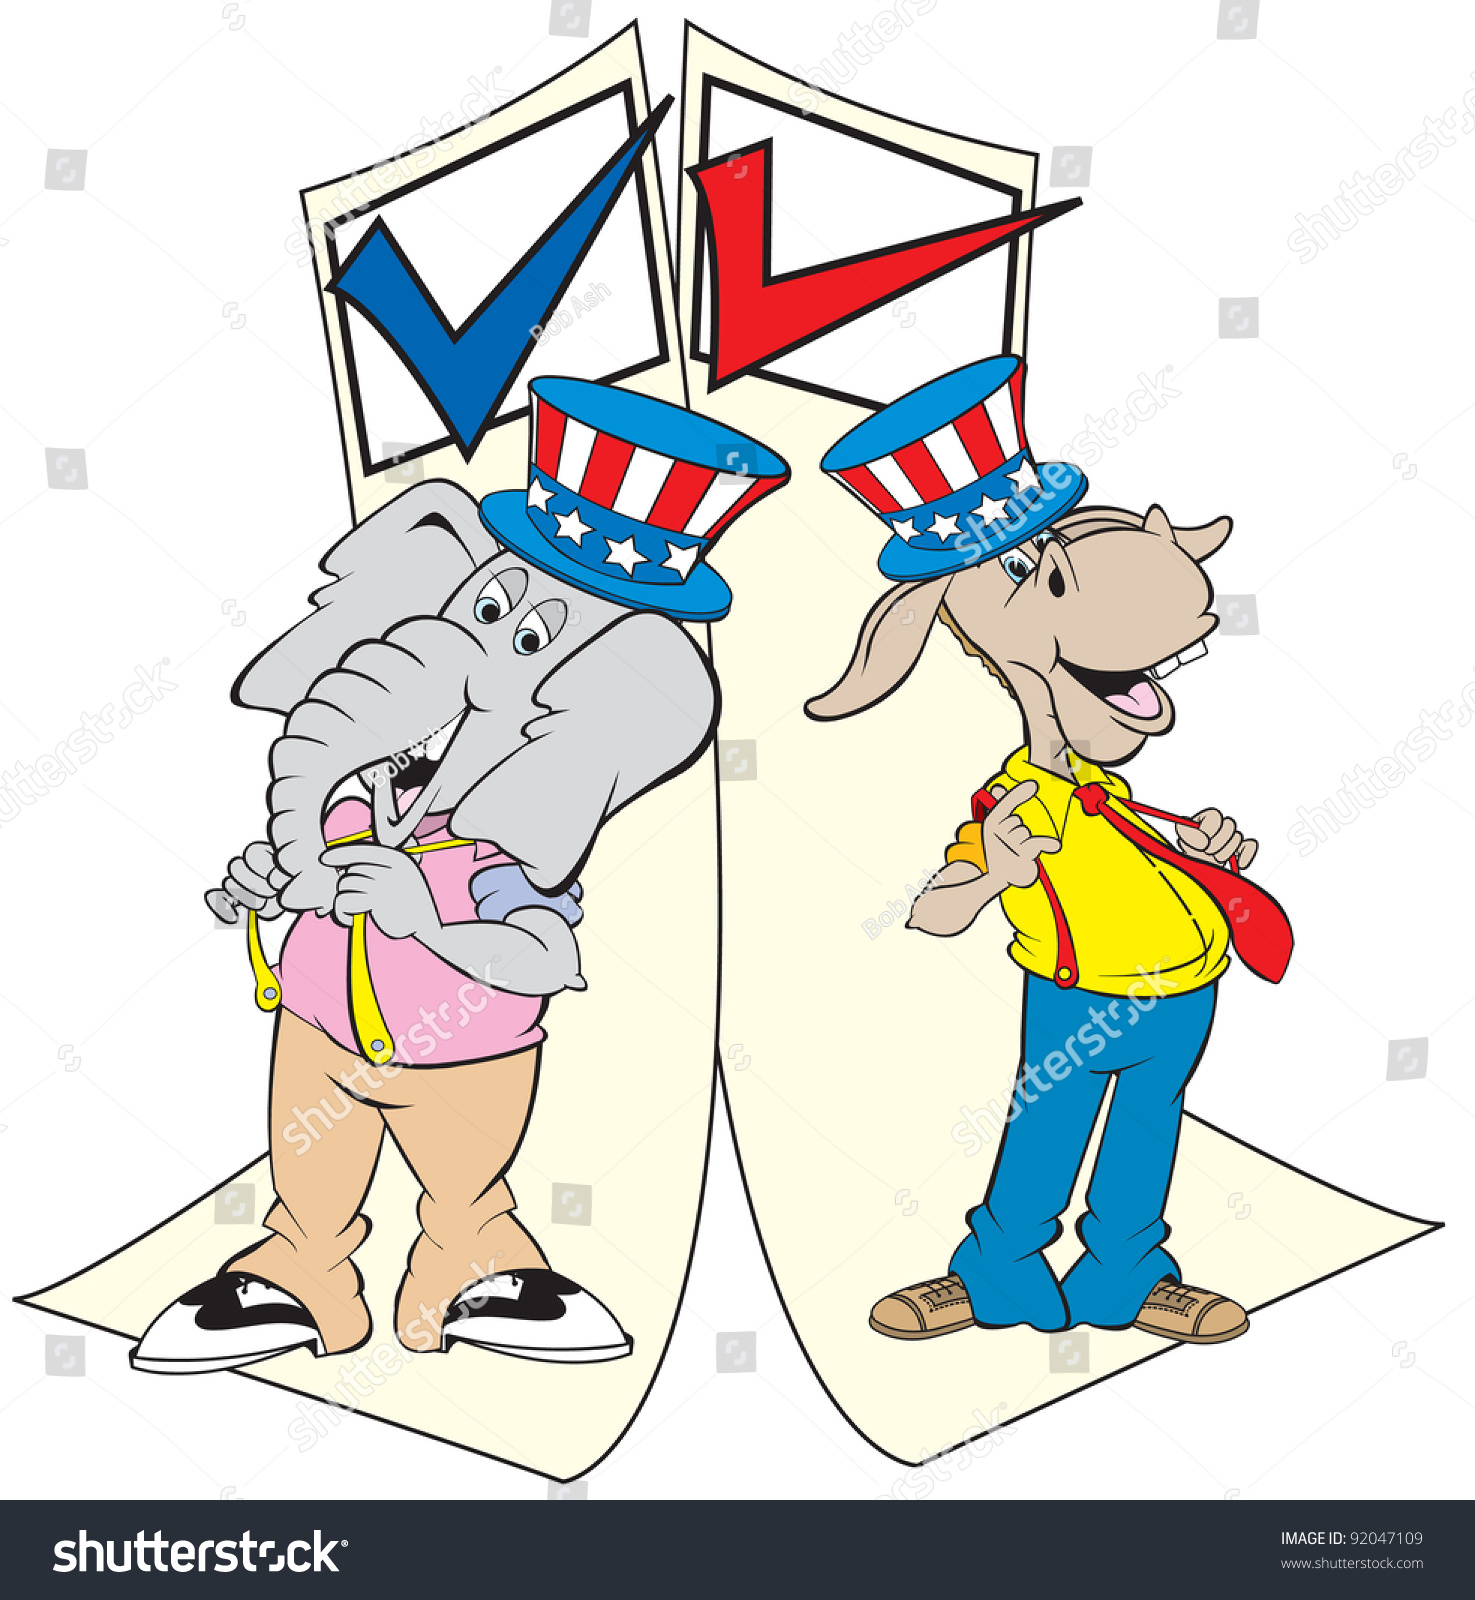 Cartoon Art Of The Republican Elephant And The Democratic Donkey ...